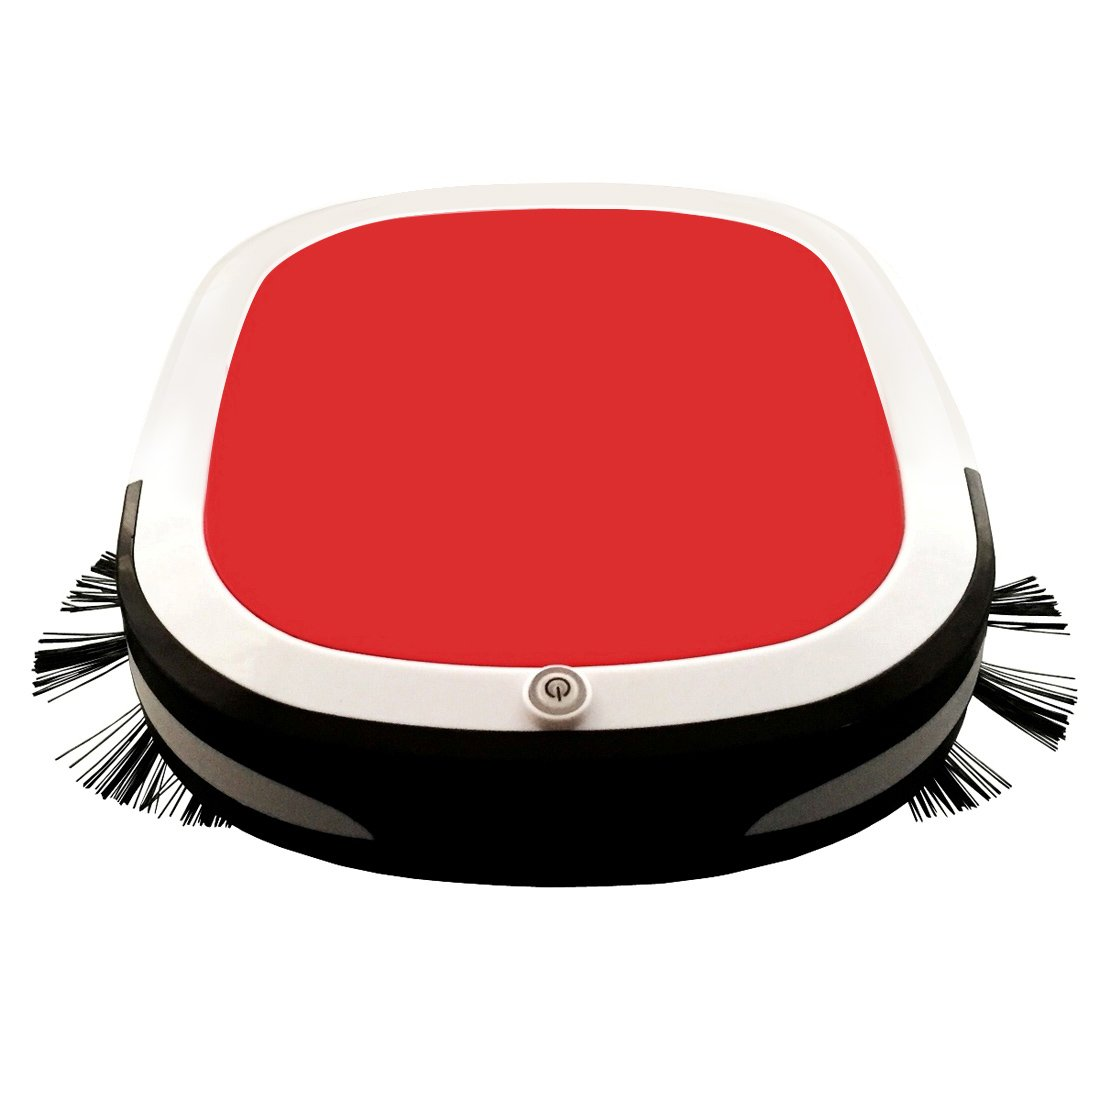 Robotic Vacuum Cleaner with Sweeping/ Suction /Wiping for Floor Cleaning, Household Intelligent Robot Cleaner for Hair/Dirt/Daily Dust Removal with 2200mAh Battery Capacity, Red